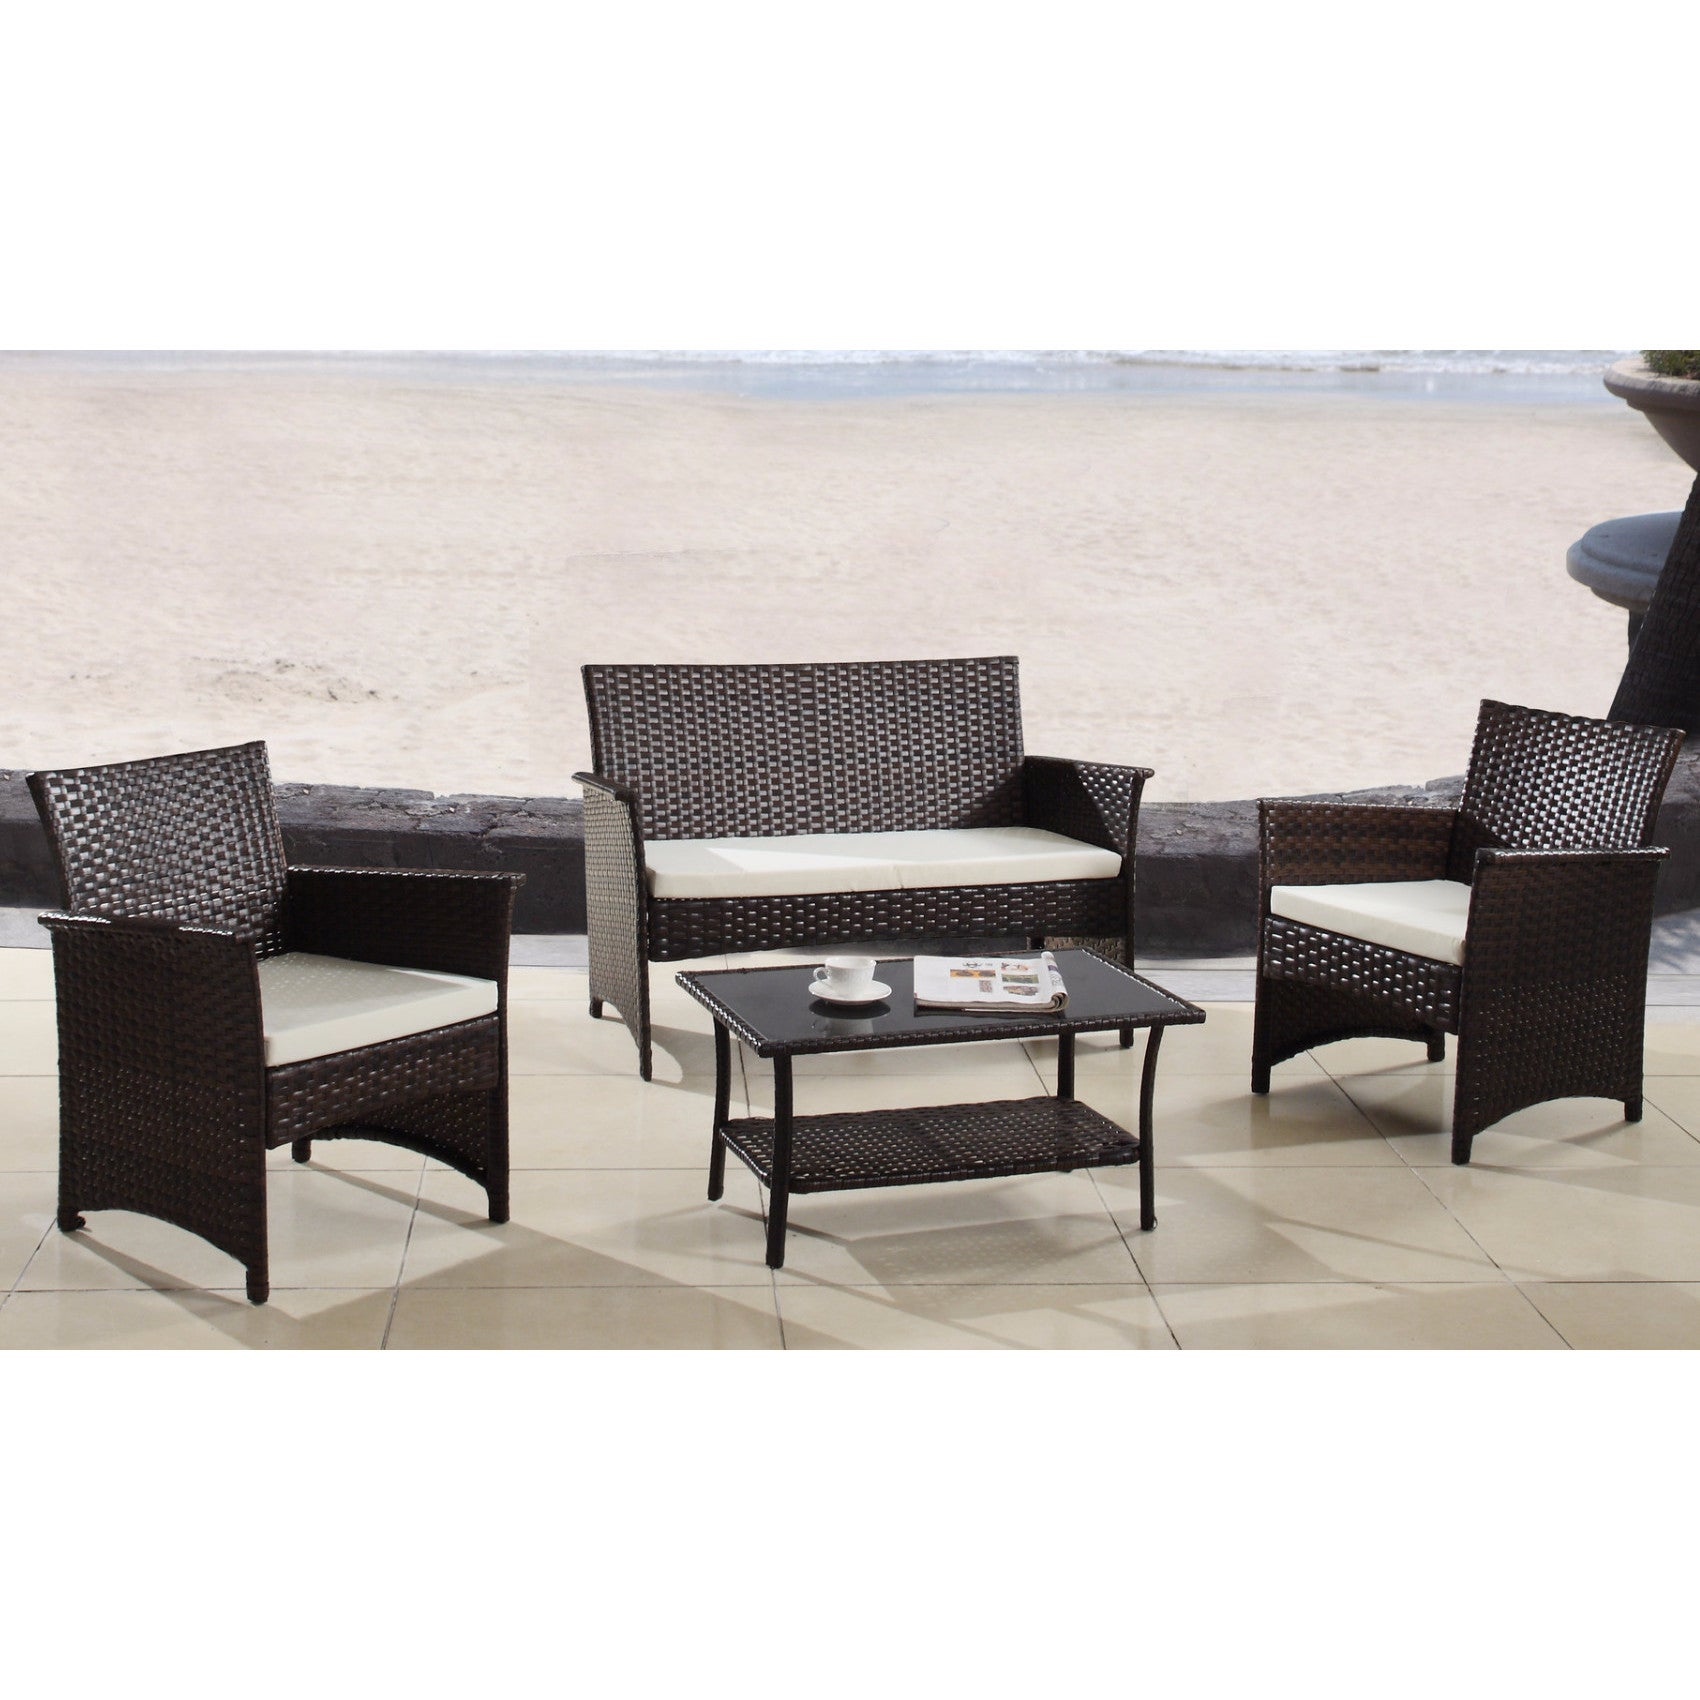 Shop modern outdoor garden patio 4 piece wicker sofa furniture set free shipping today overstock com 12067187